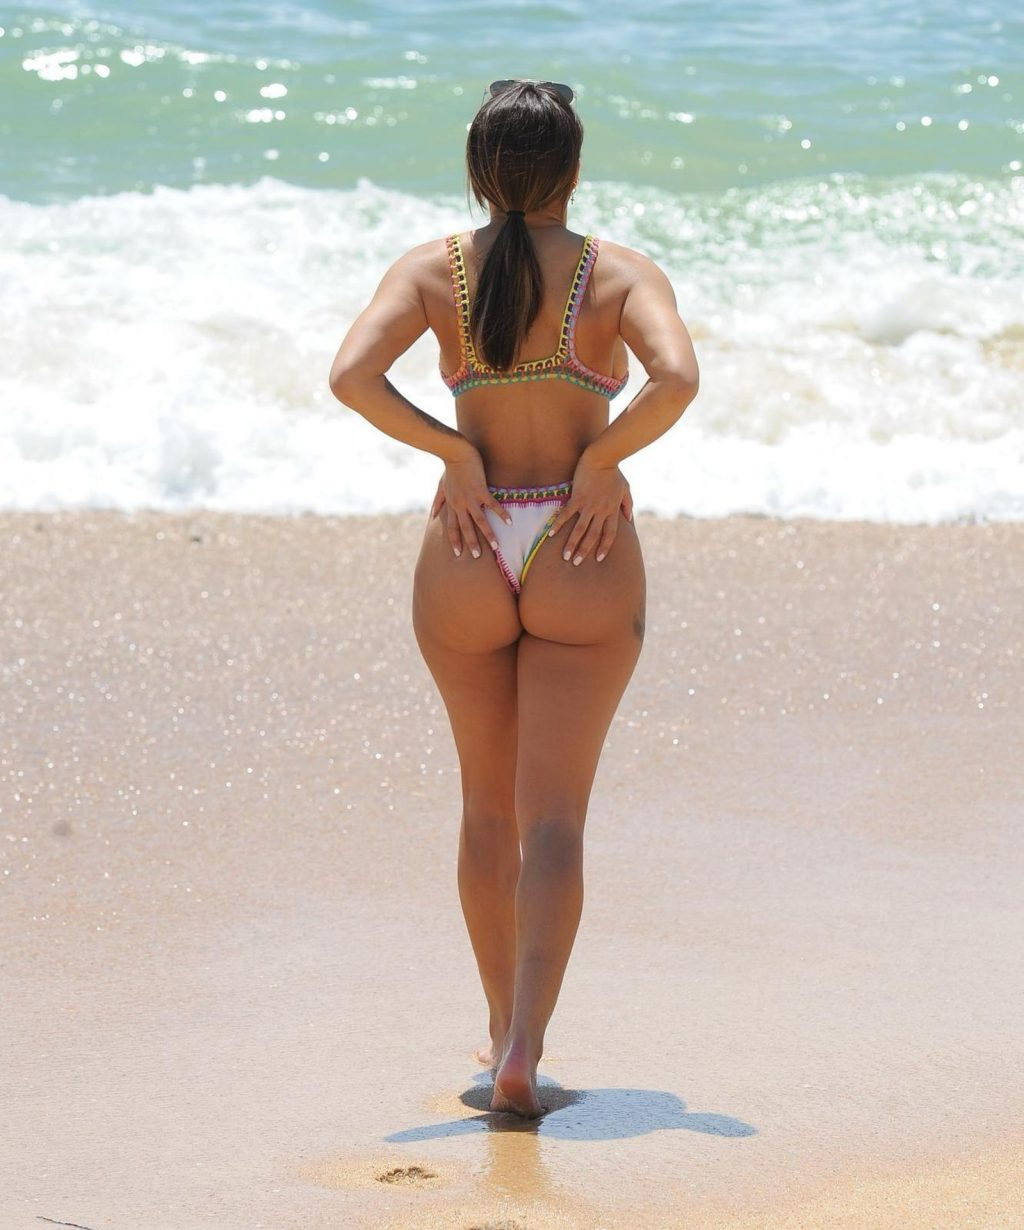 Kayleigh Morris Shows Off Her Sexy Body on the Beach in Spain (20 Photos)